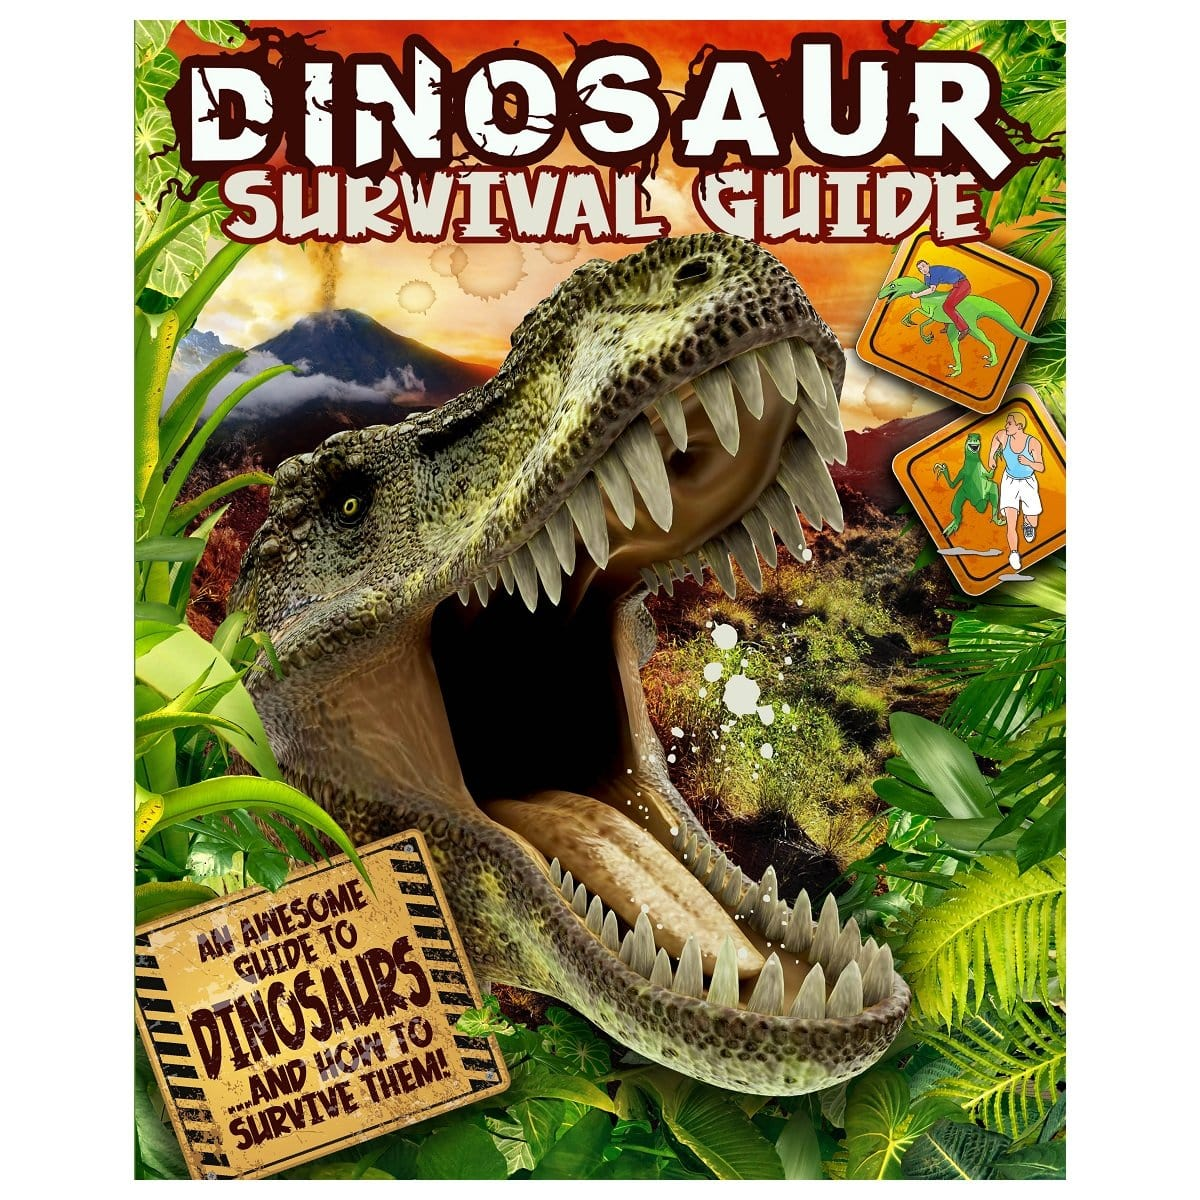 Dinosaur Survival Guide - An Awesome Guide To DinosaursÂ…And How To Survive Them!